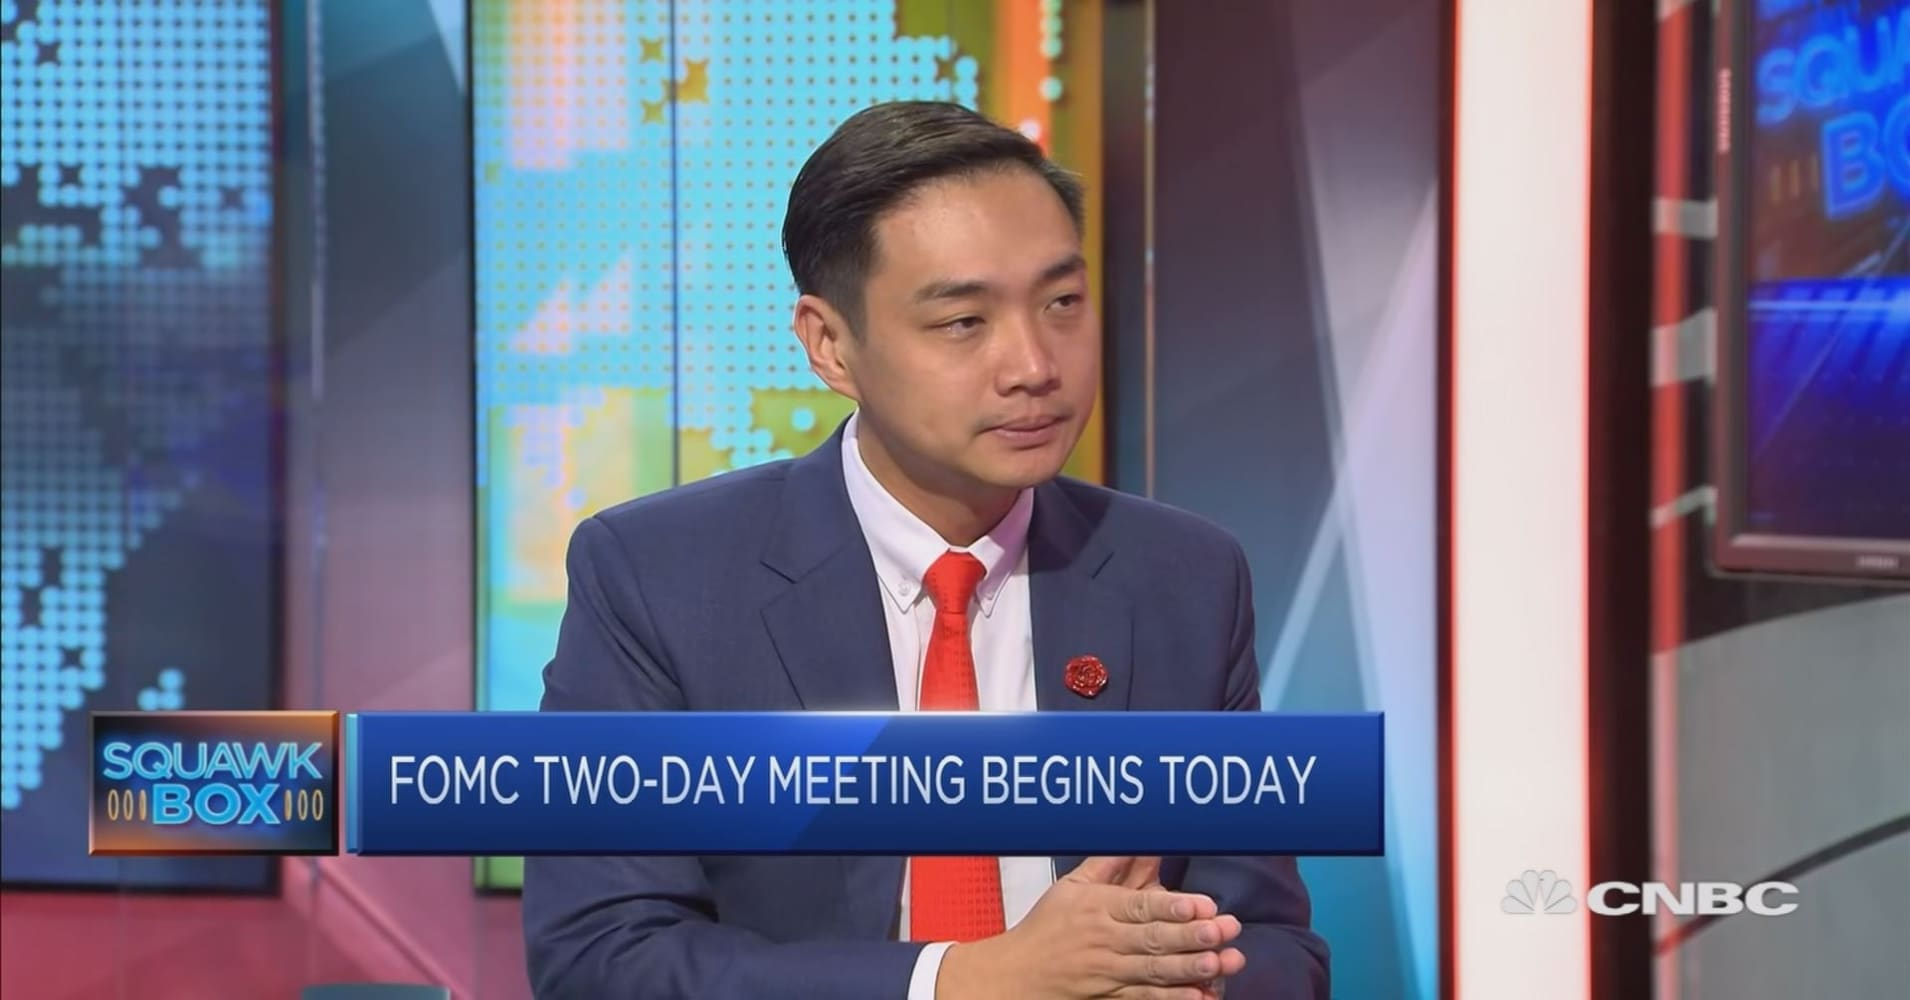 Be nimble to react accordingly to the market, says strategist